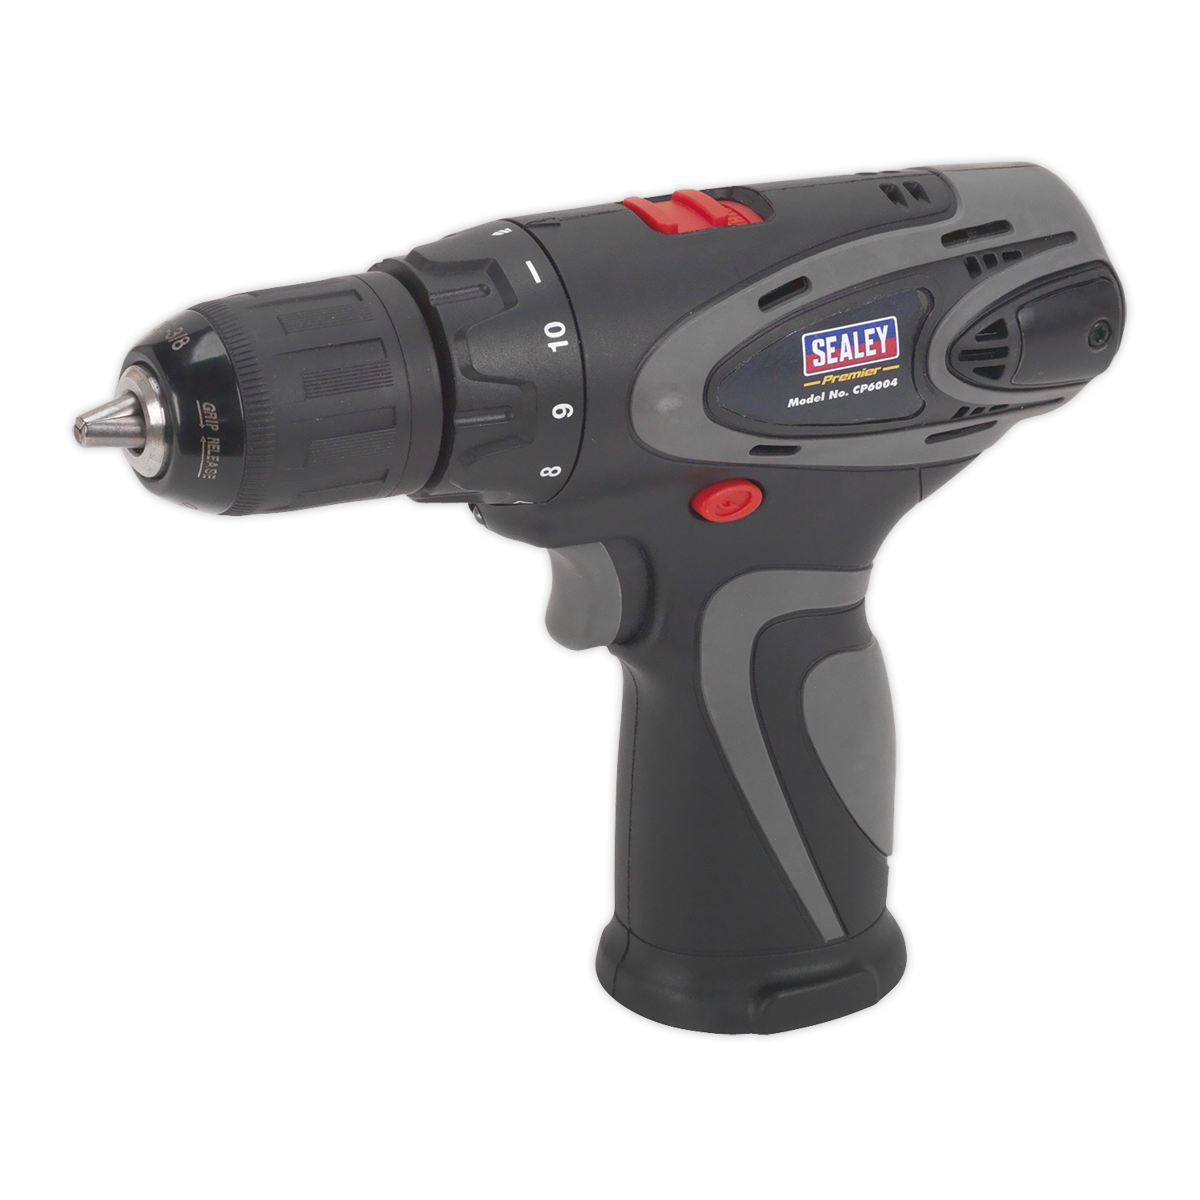 Drill/Driver 10mm 2-Speed 14.4V Li-ion - Body Only